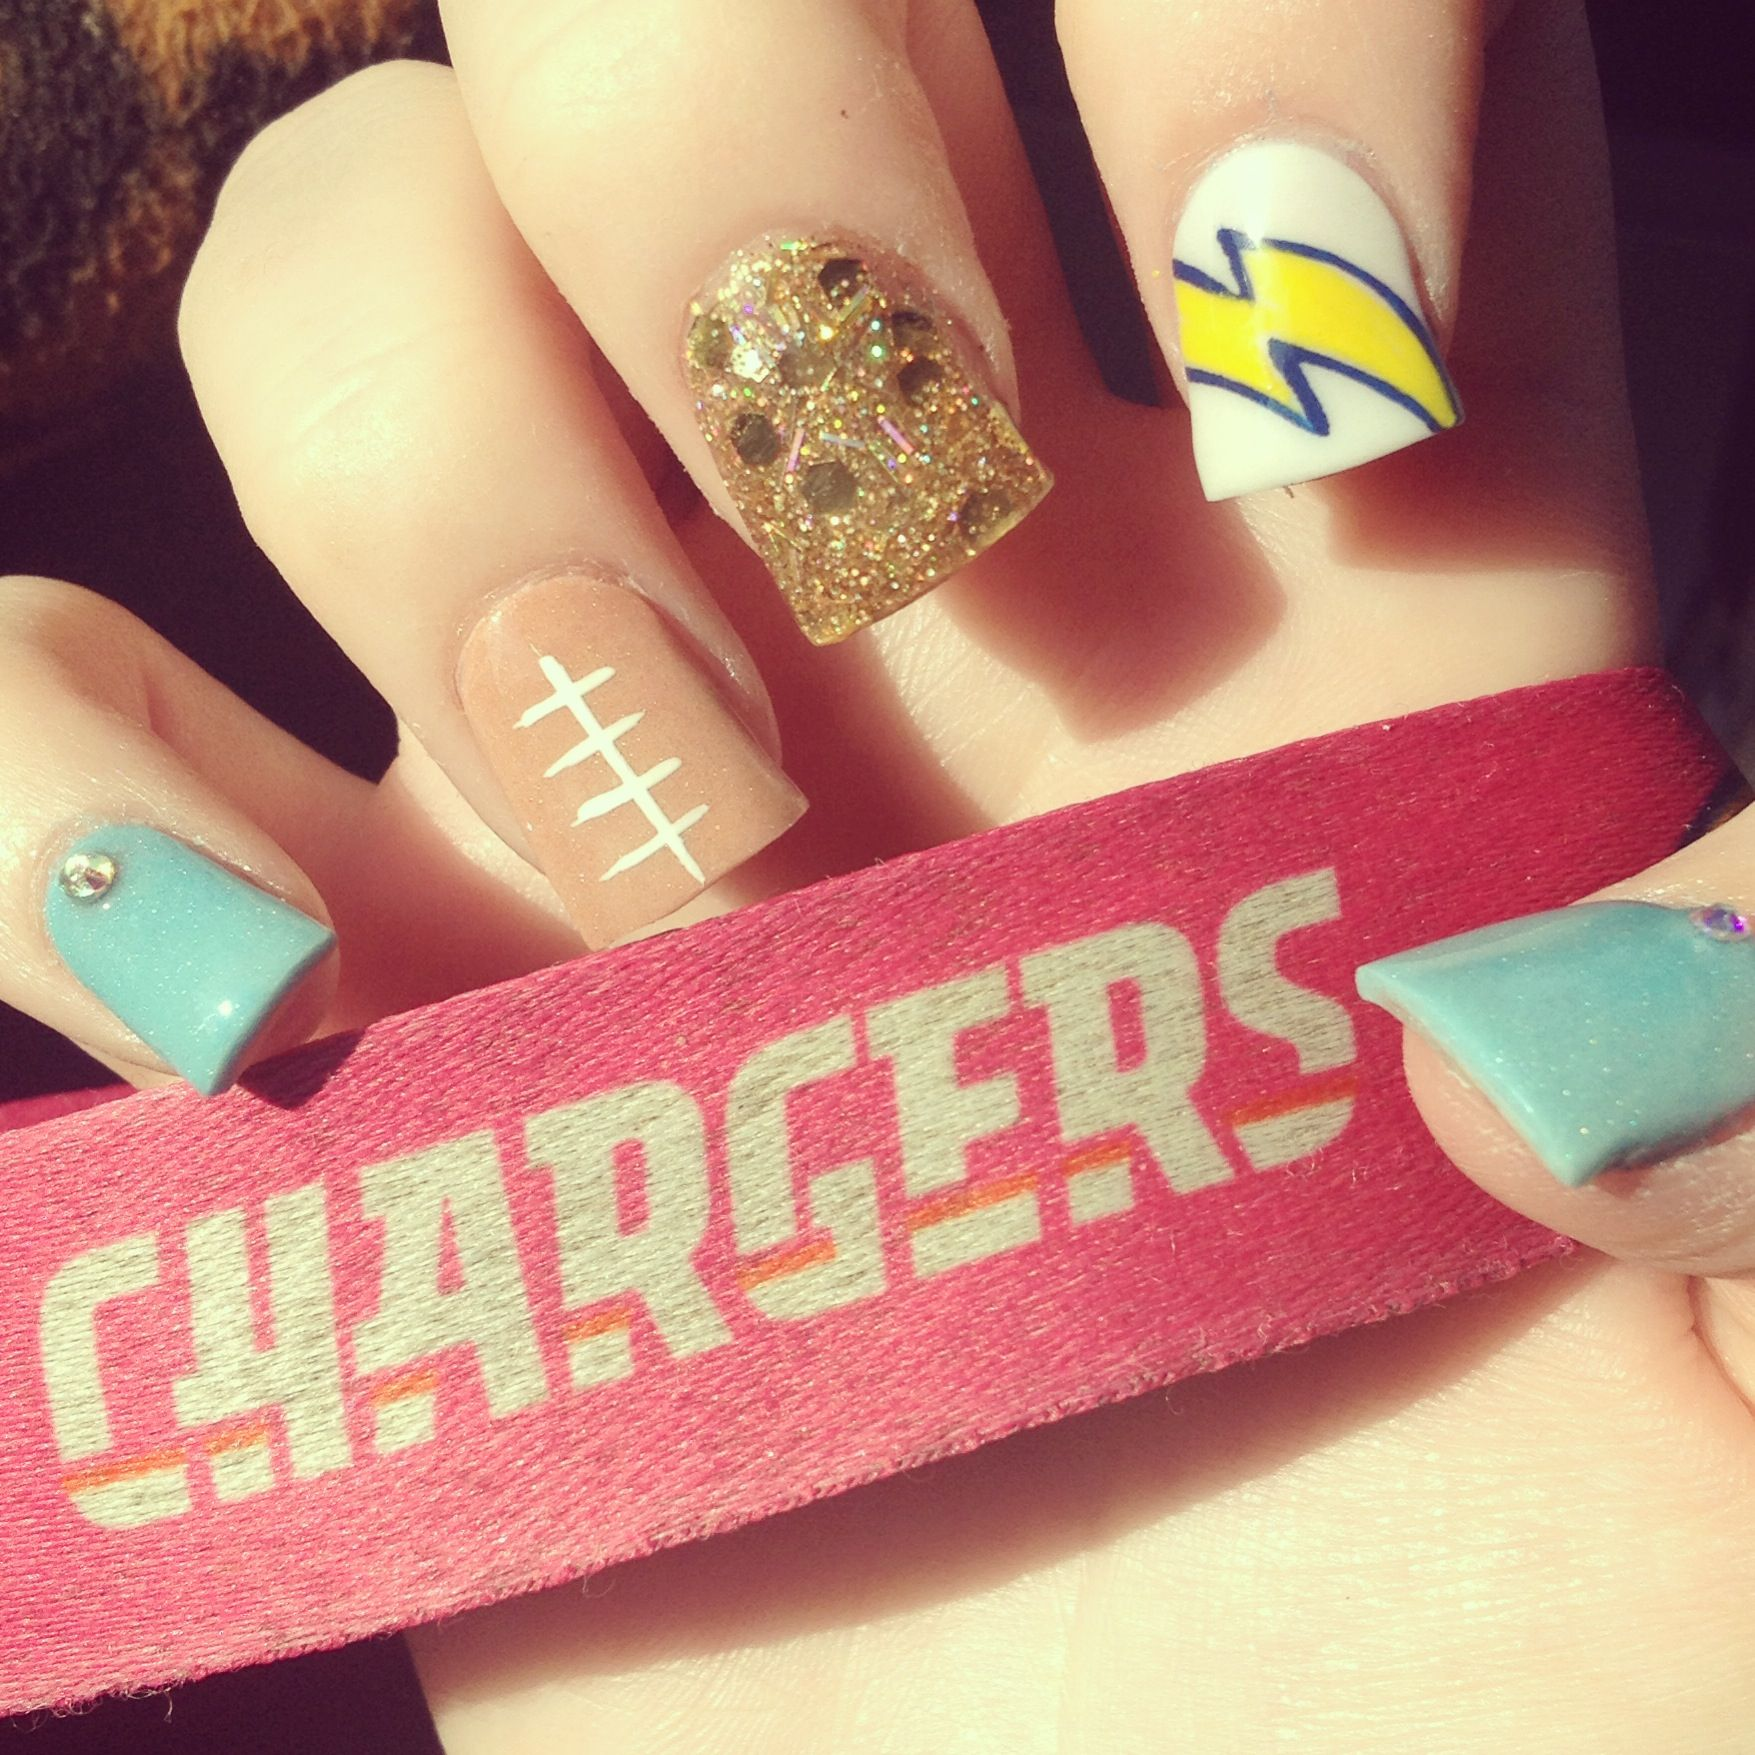 San Diego Chargers nails - adorable! I think football loving chicks ...